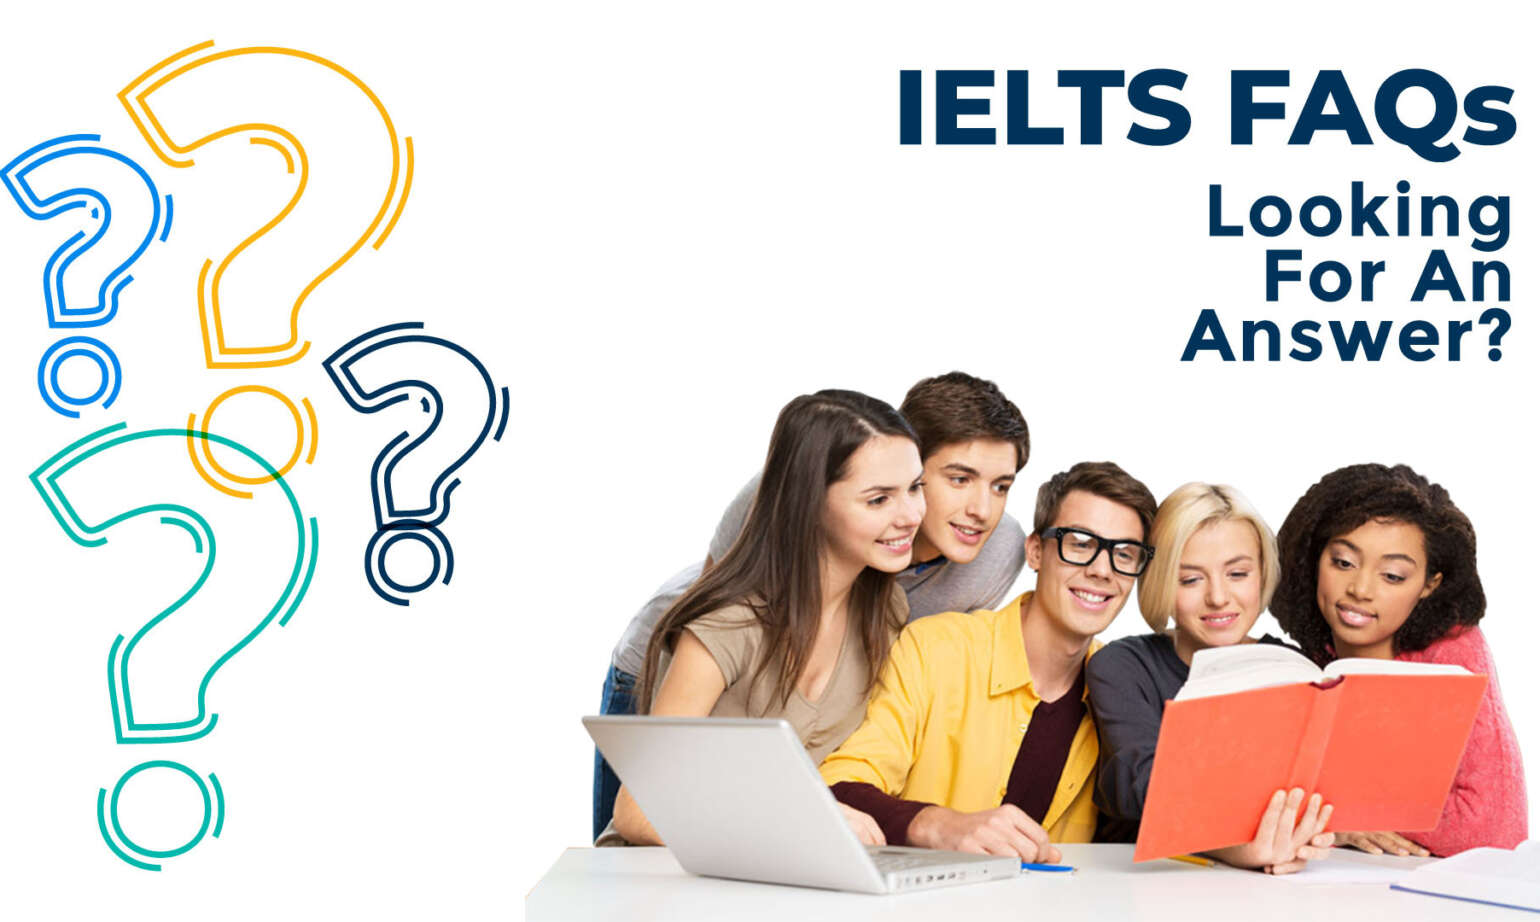 A Glance of Frequently Asked Questions (FAQs) for IELTS